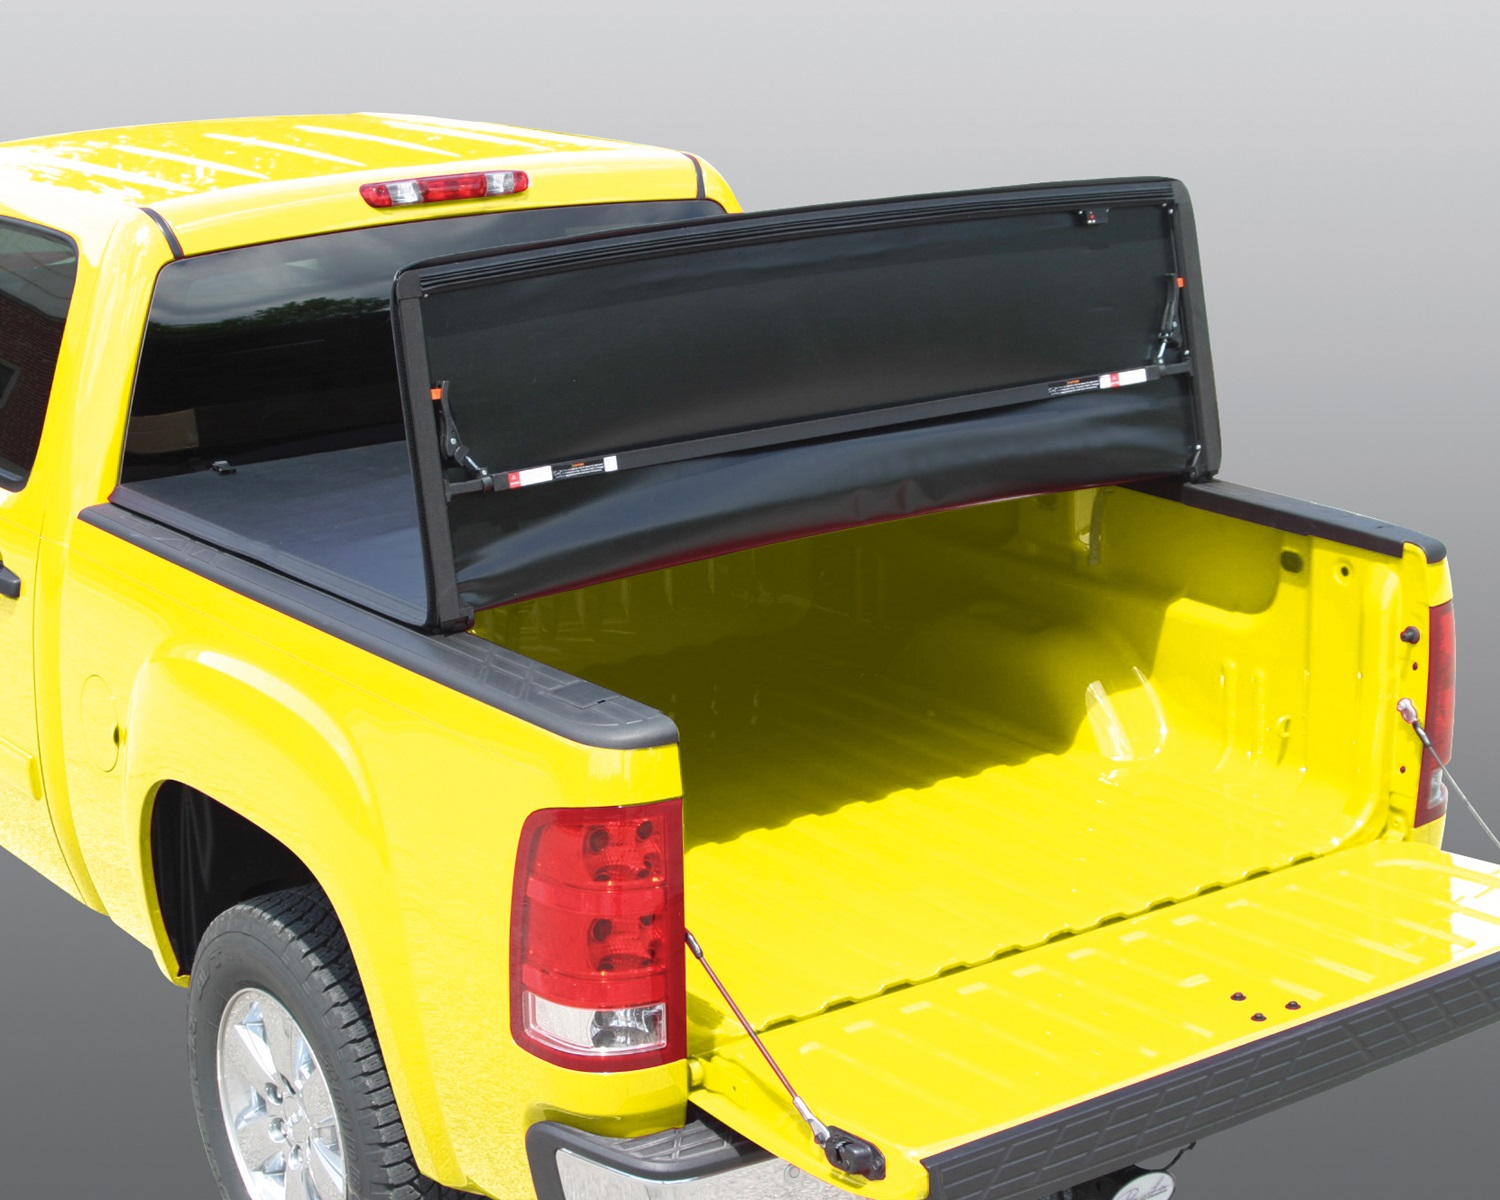 Rugged Liner E3-T616 E-Series Vinyl Folding Rugged Cover Fits 16-18 Tacoma